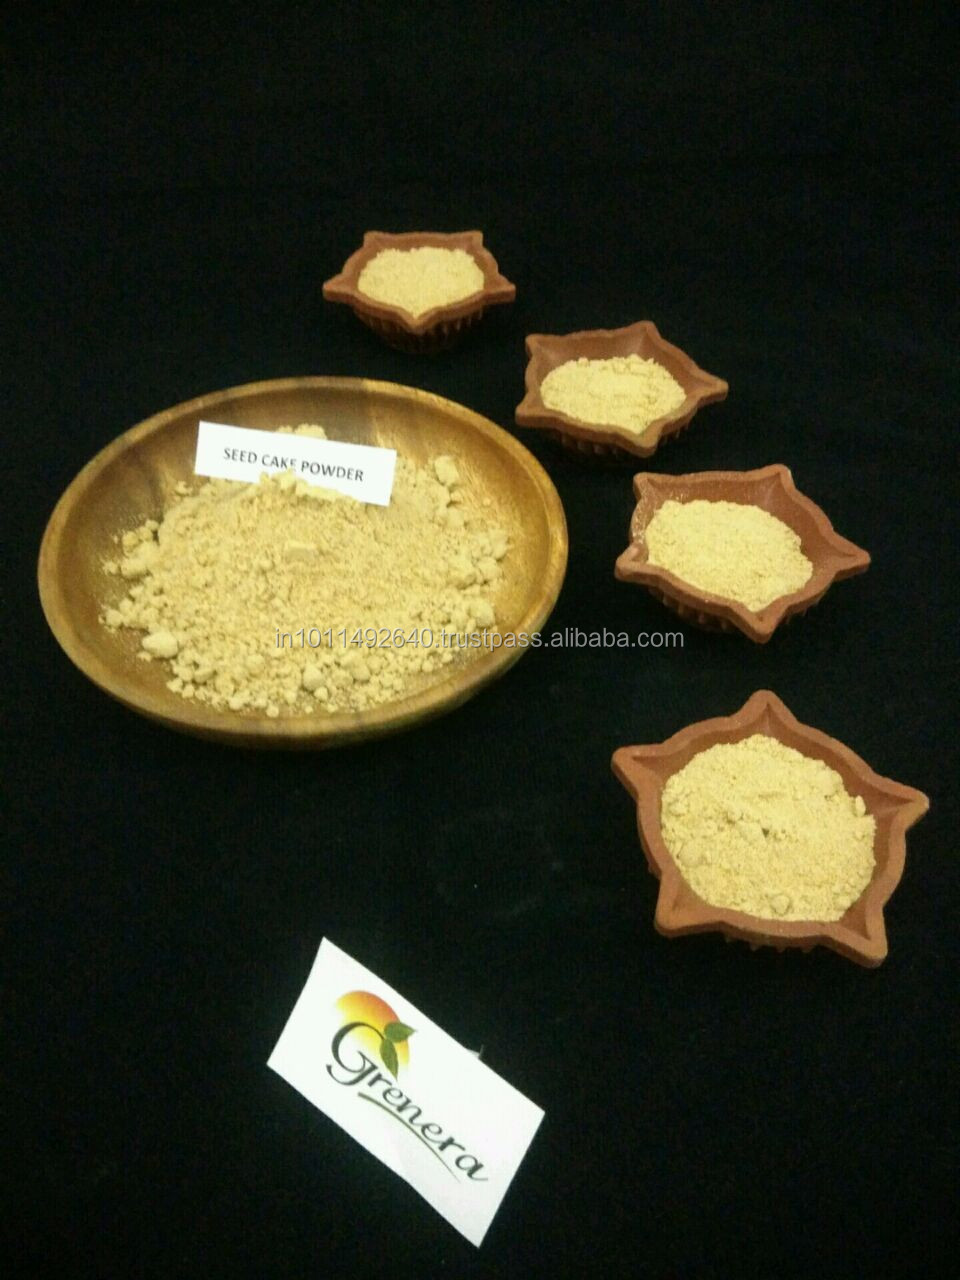 Moringa Seed Cake Powder / Best For Water Purification